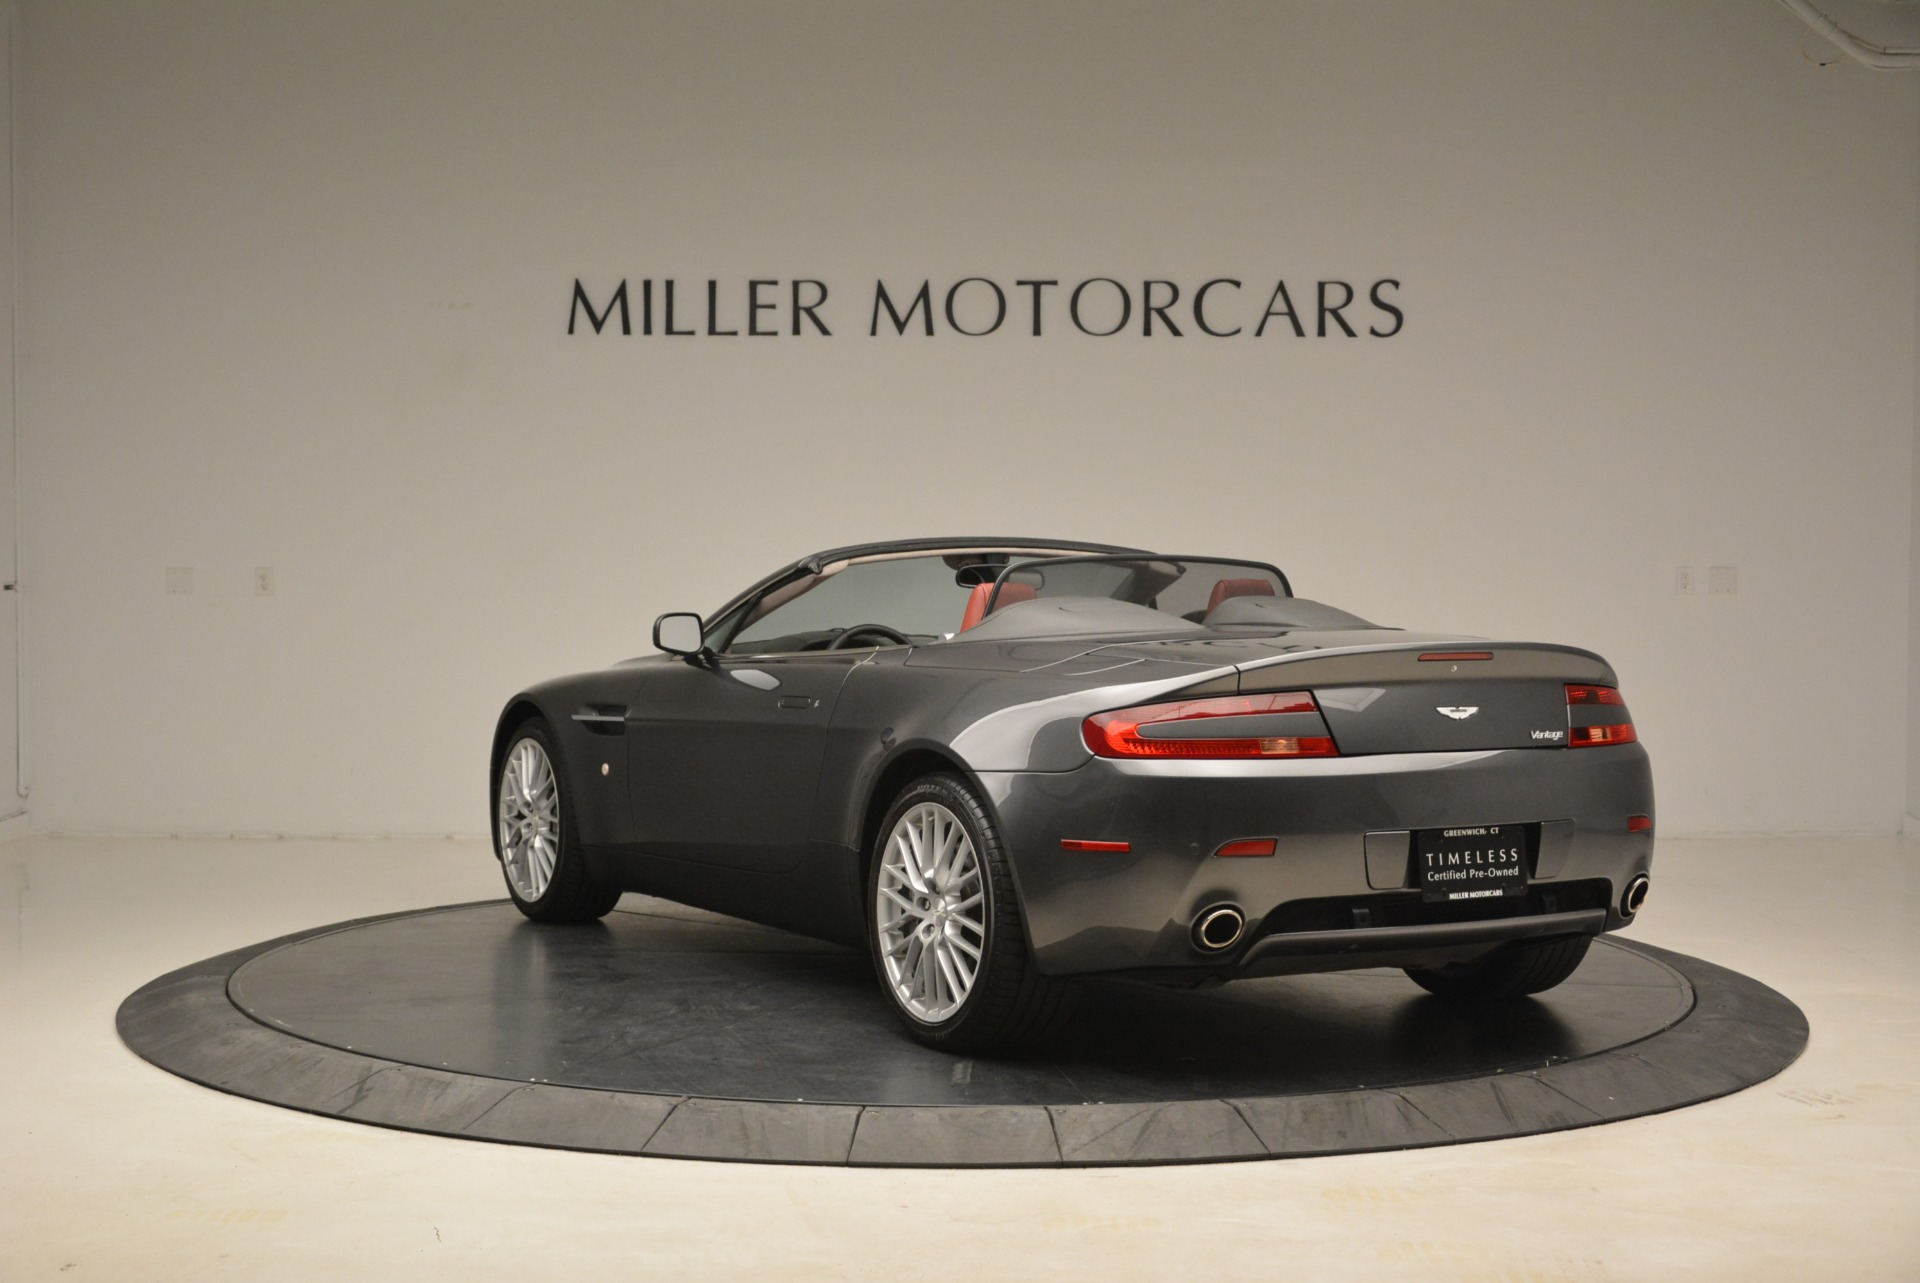 Used 2009 Aston Martin V8 Vantage Roadster For Sale In Greenwich, CT. Alfa Romeo of Greenwich, 7333 2123_p5